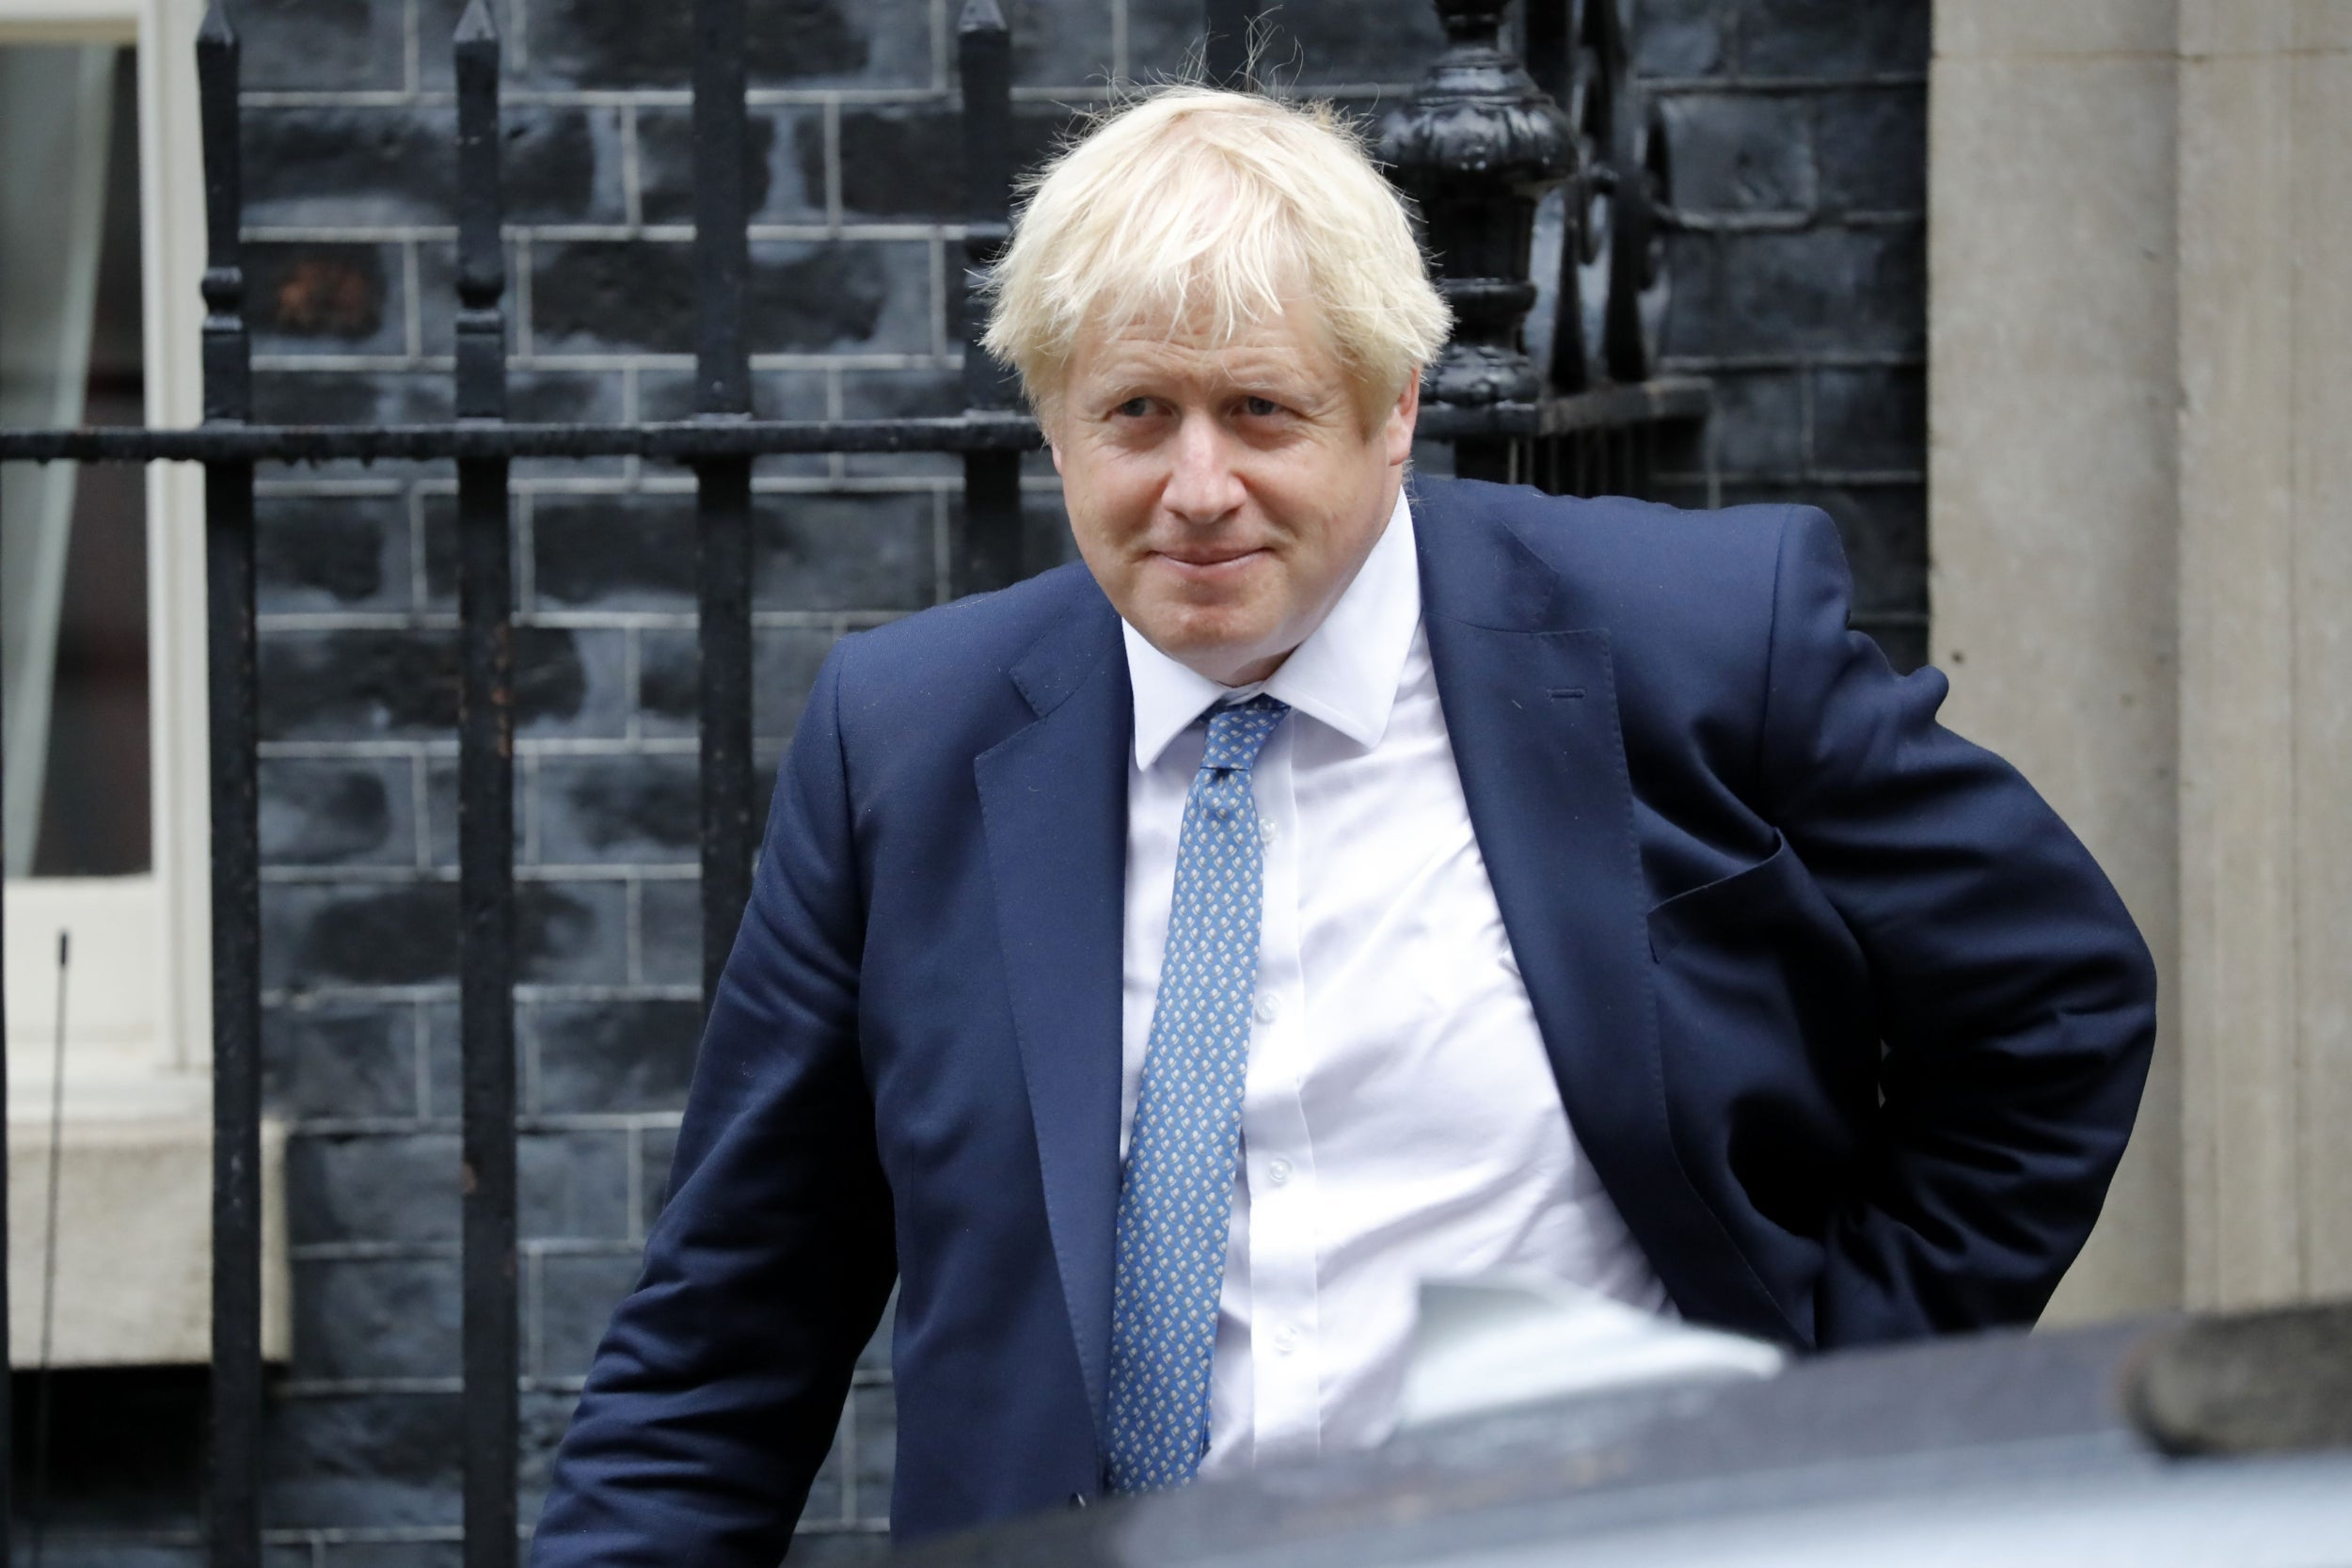 Boris Johnson news live – 'We're enjoying this': Cummings revels in Brexit chaos and blames MPs for failing to deliver it